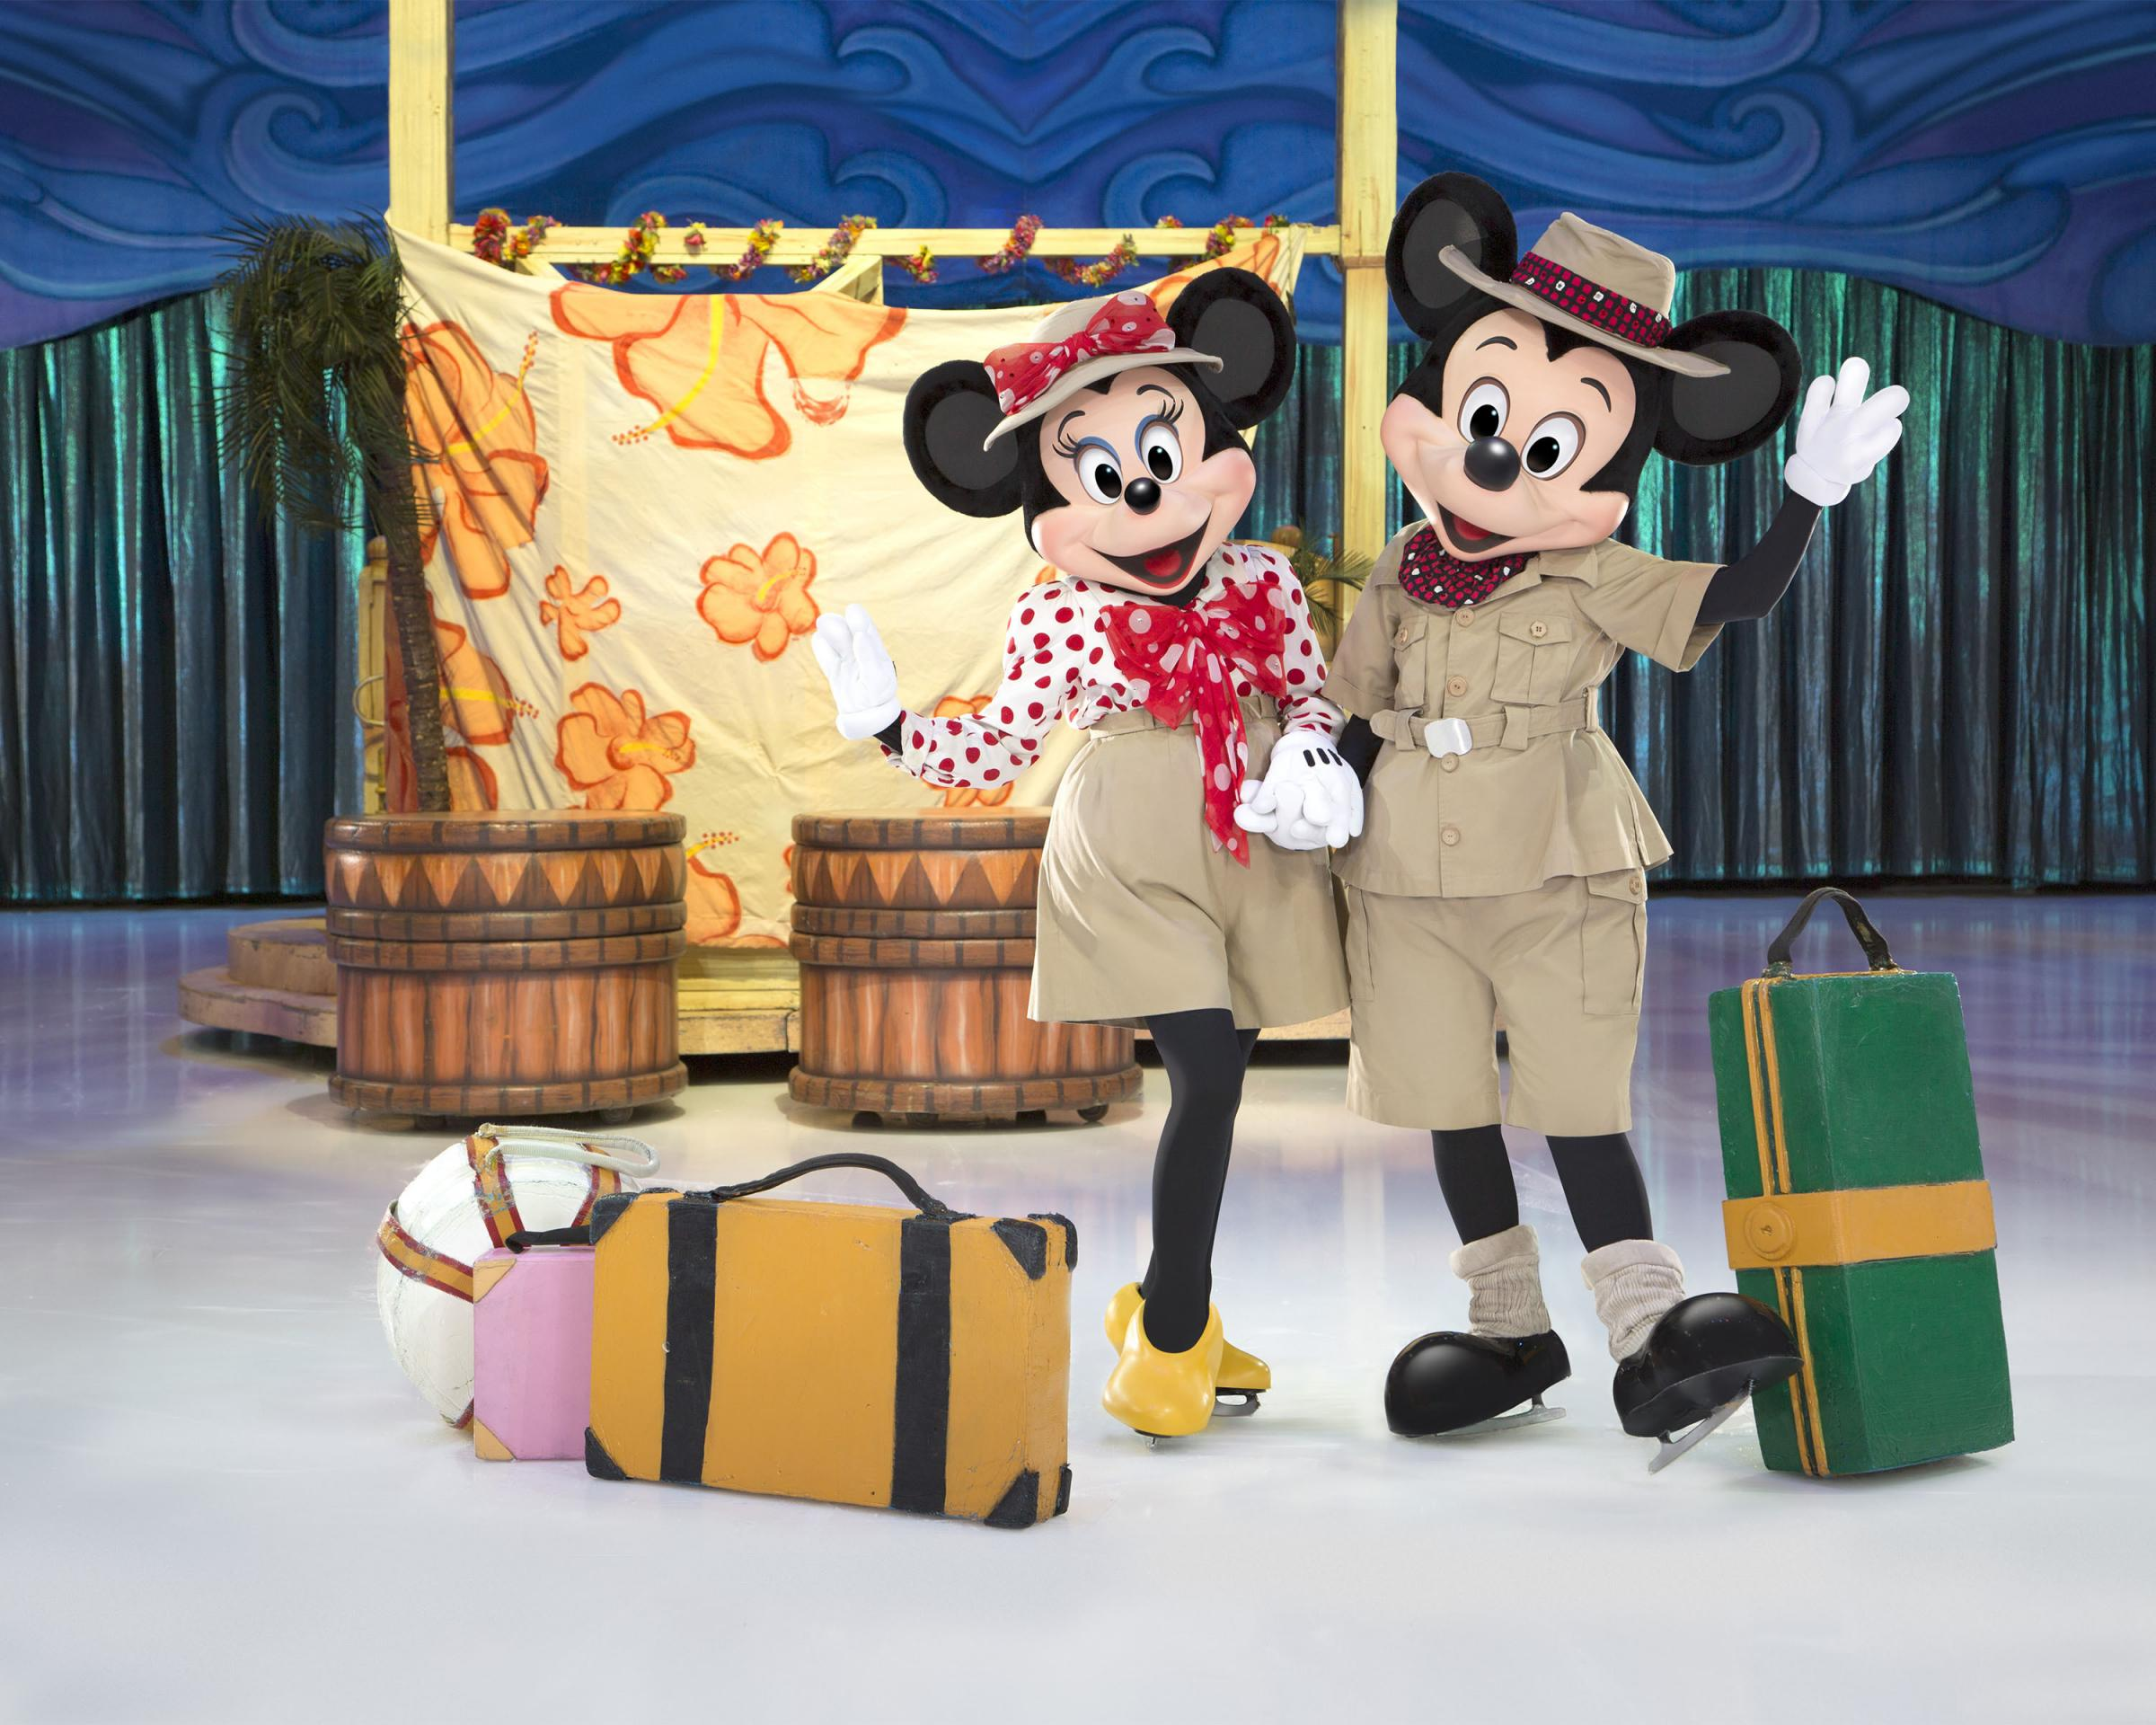 Mickey and Minnie Mouse are ready to take audiences on an adventure